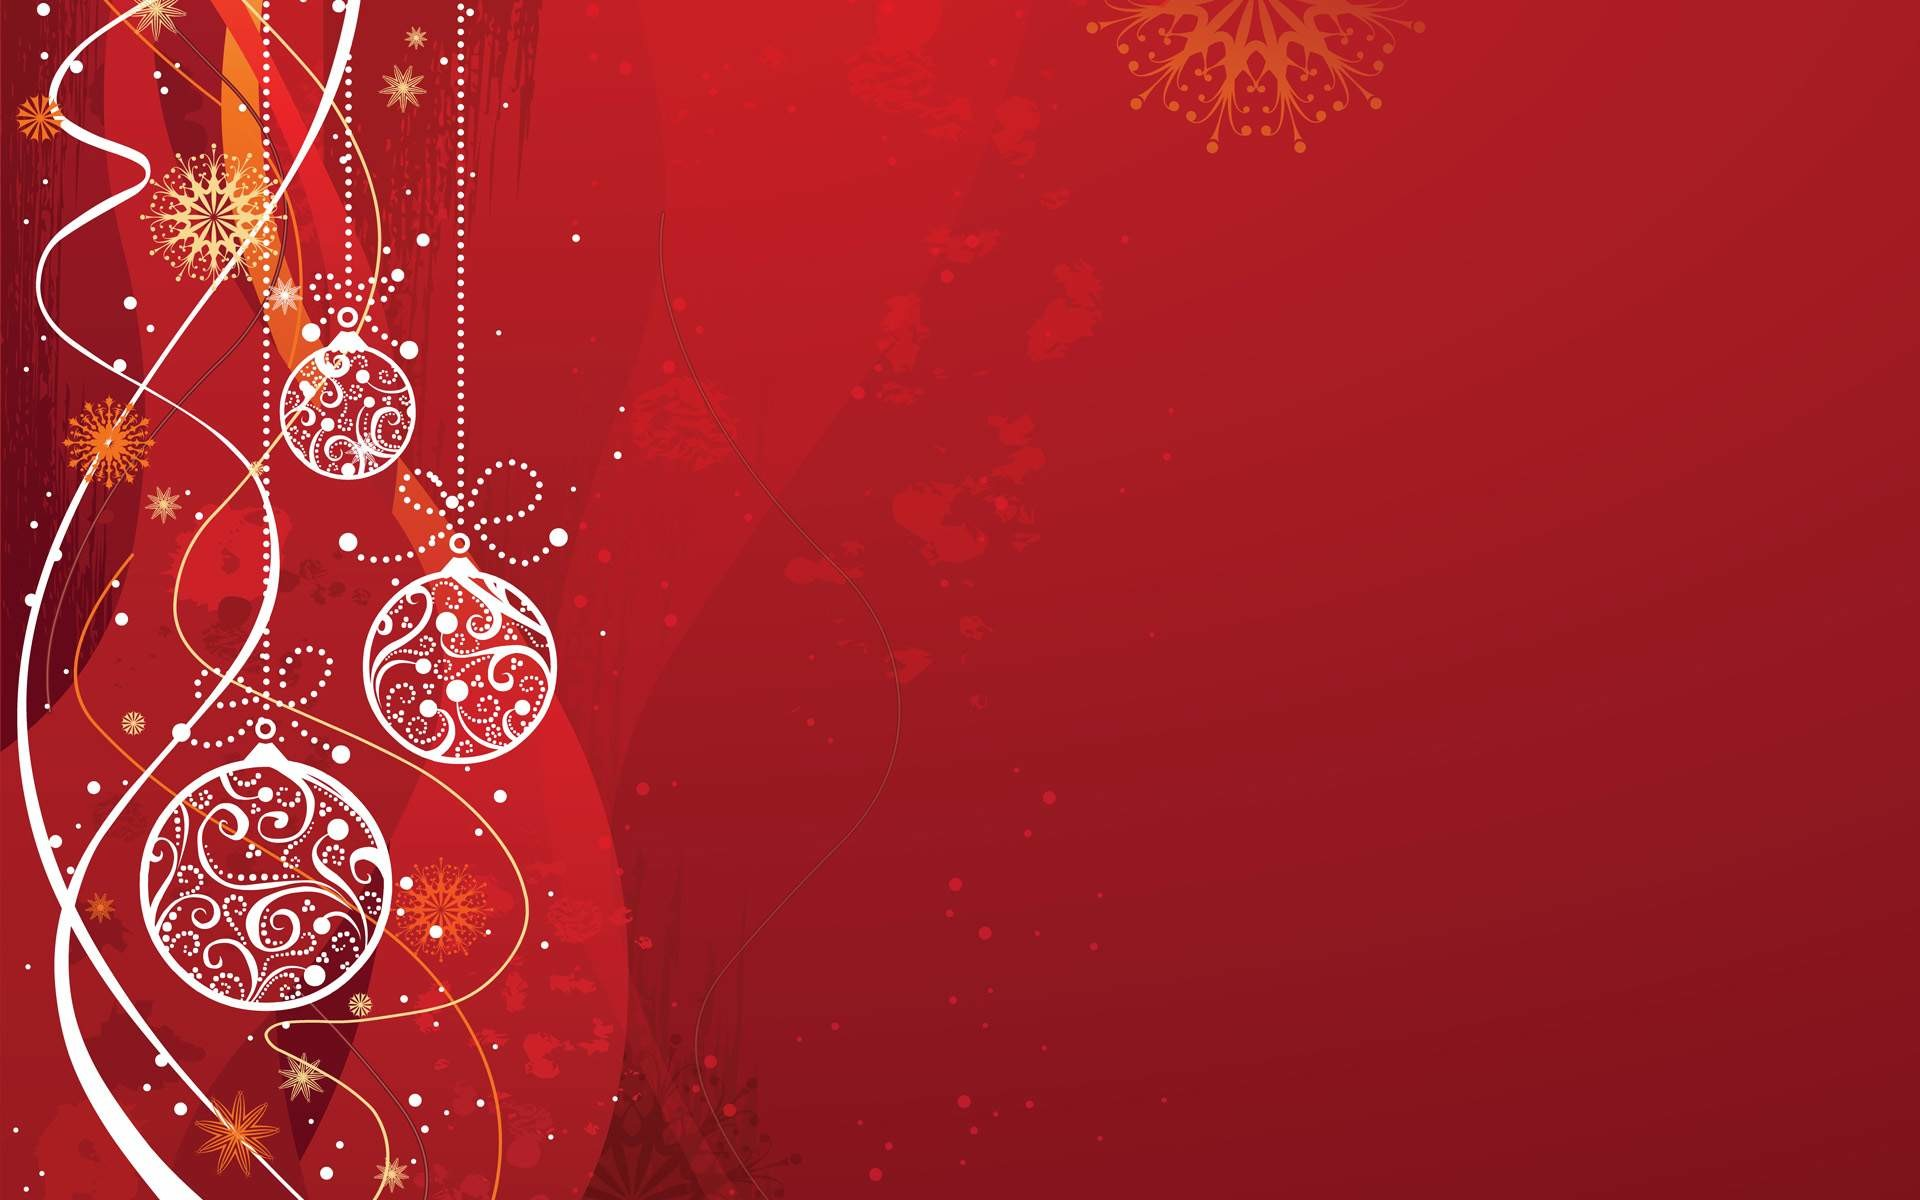 1920x1200 Christmas Wallpaper Free Download.